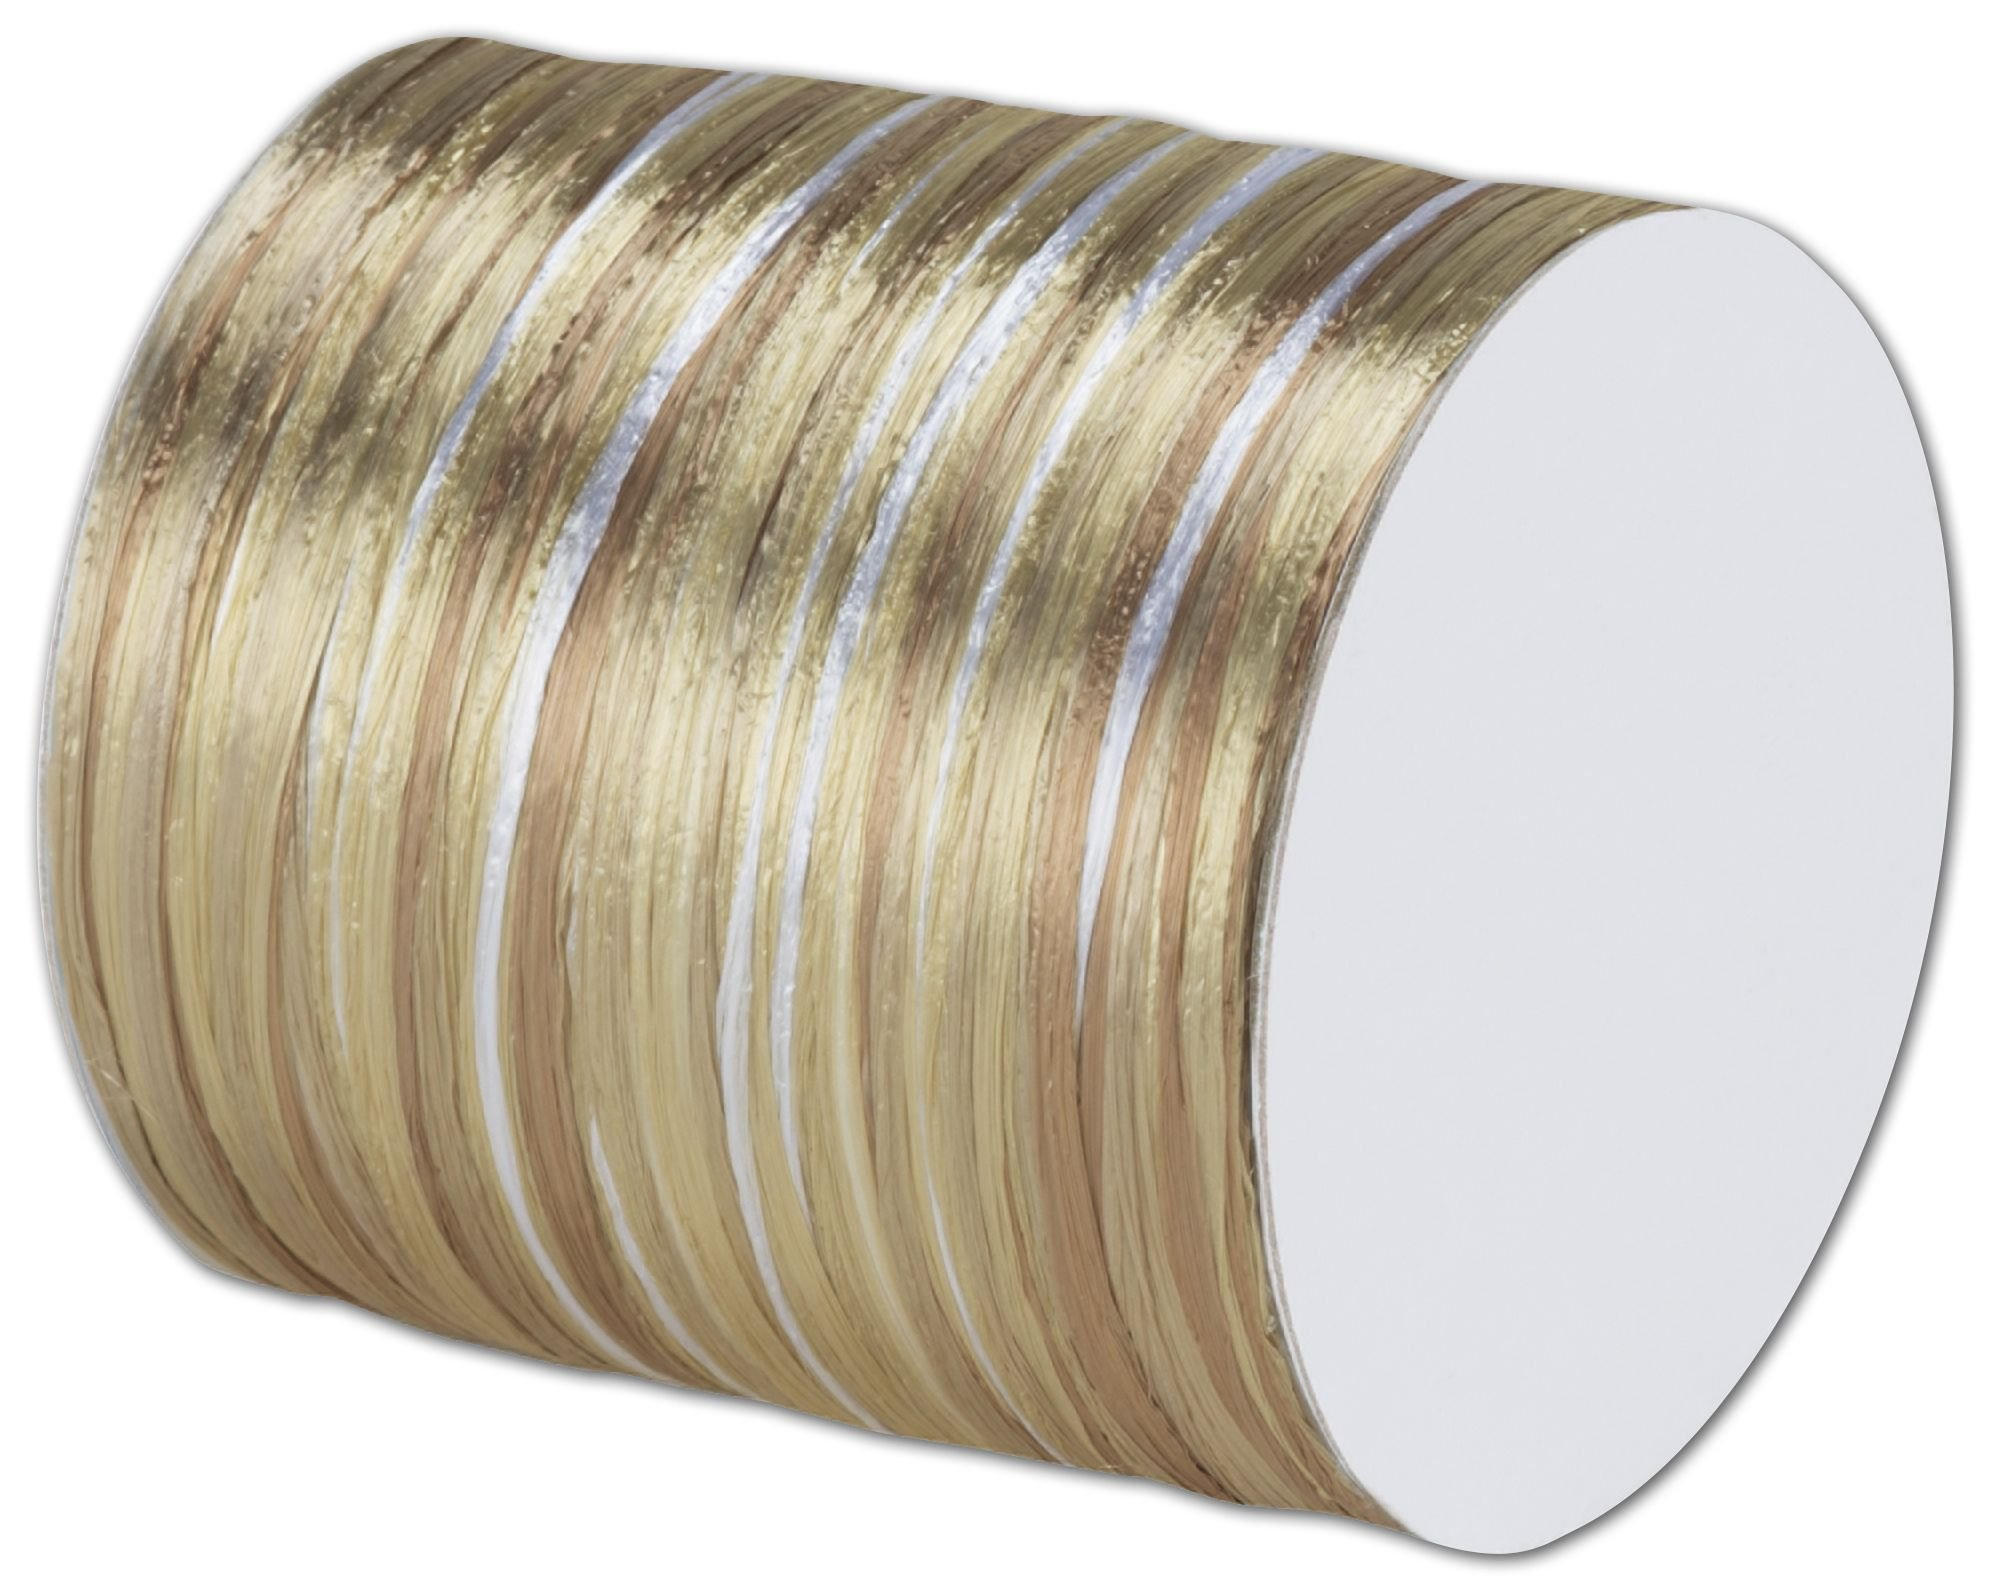 Raffia Pearl Champagne Multi Ribbon 1/4'' x 55 Yds (2/pack)- BOWS-138-104 by Miller Supply Inc